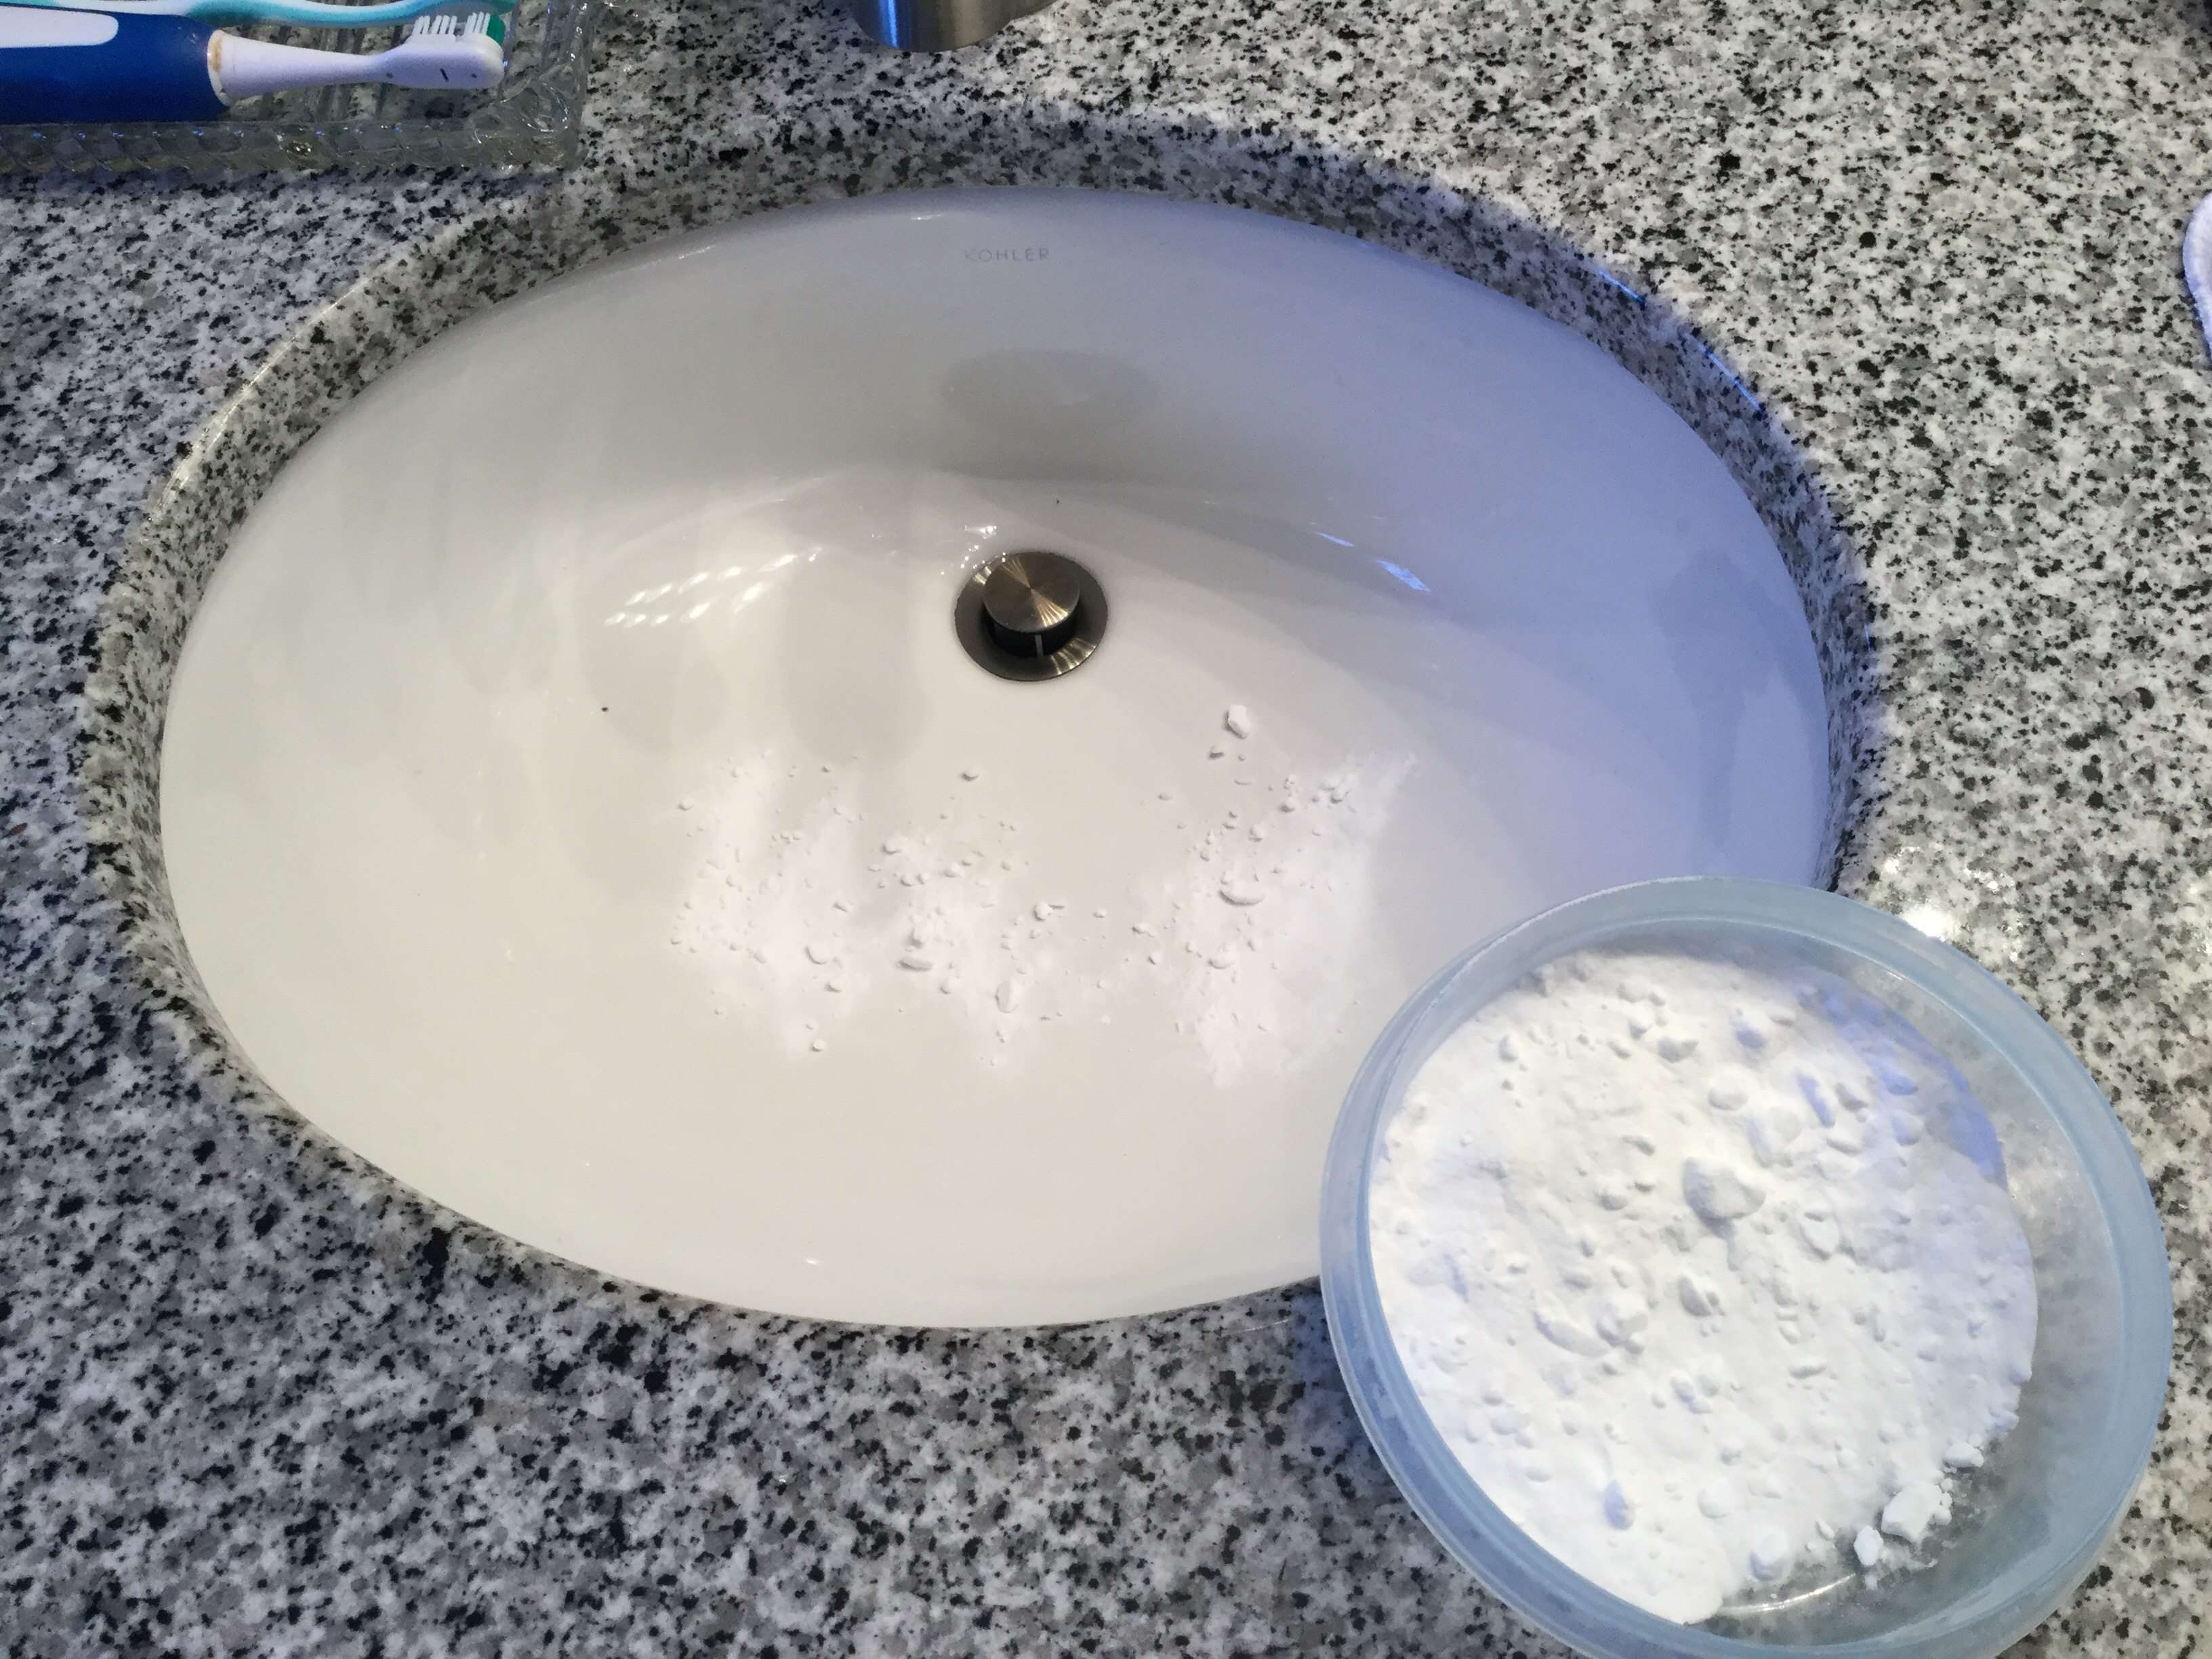 Sprinkle with baking soda, scrub it clean, and rinse.